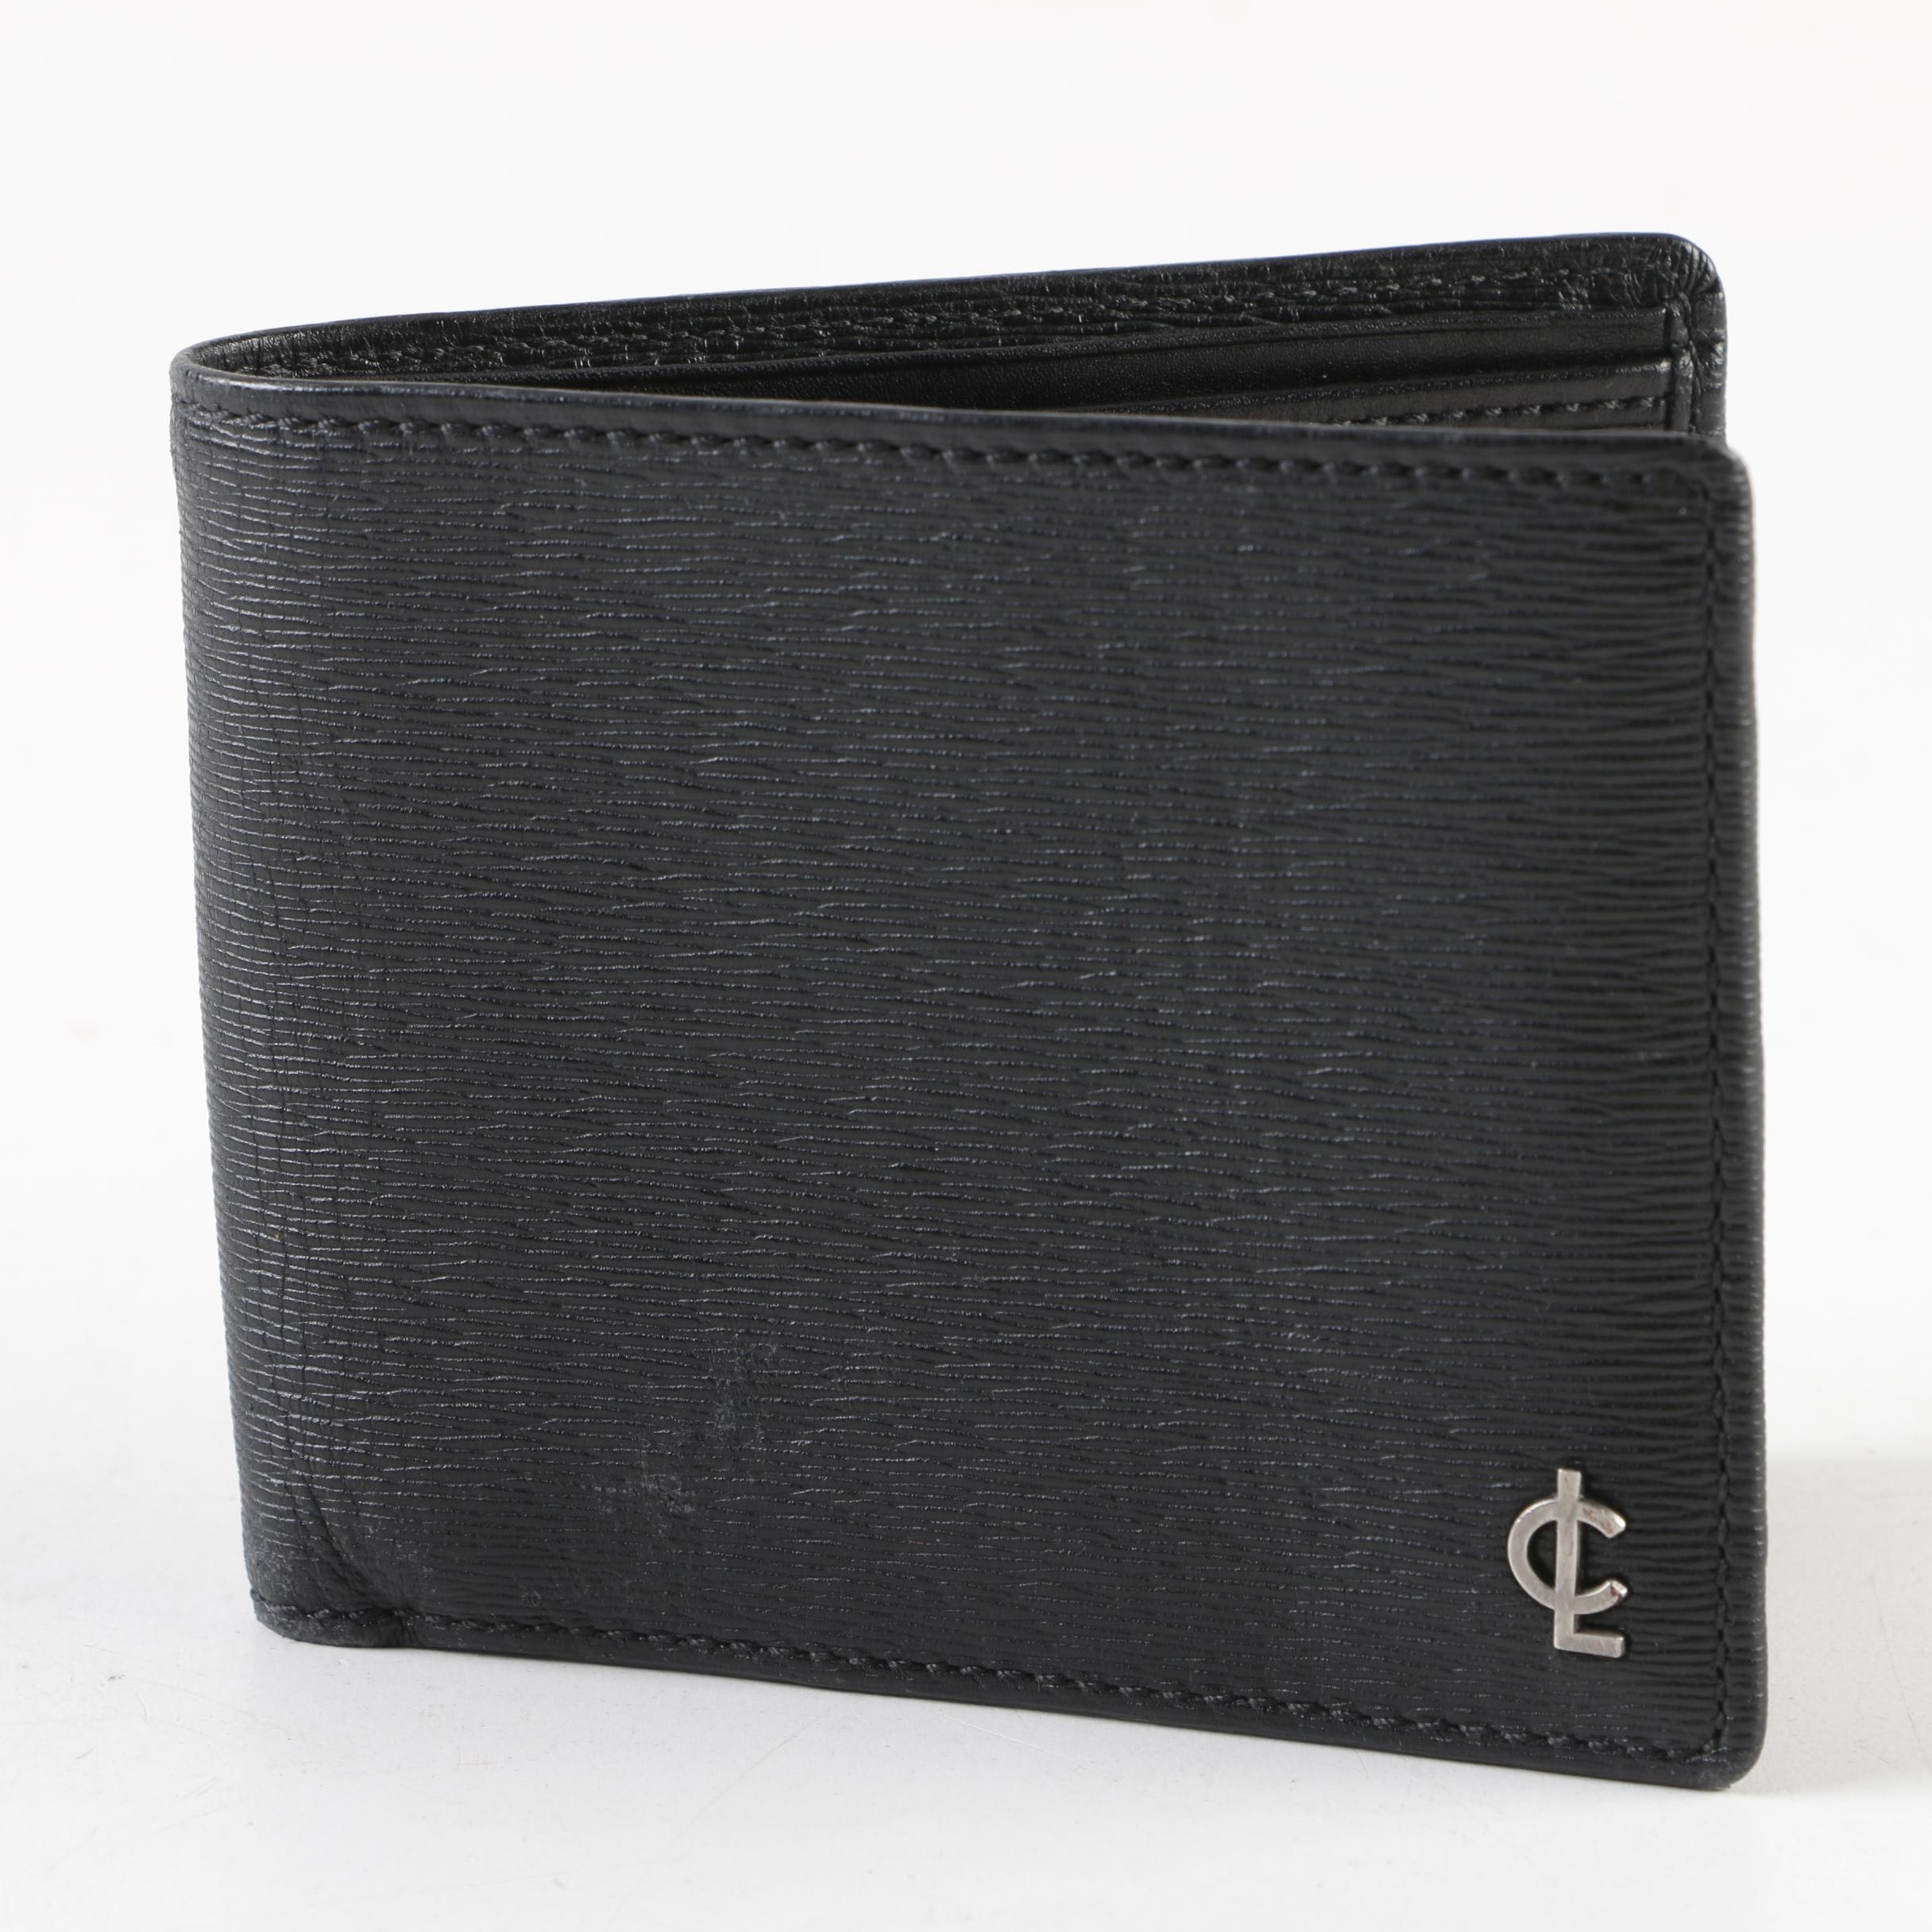 Coach CL Logo Black Textured Leather Folio Wallet